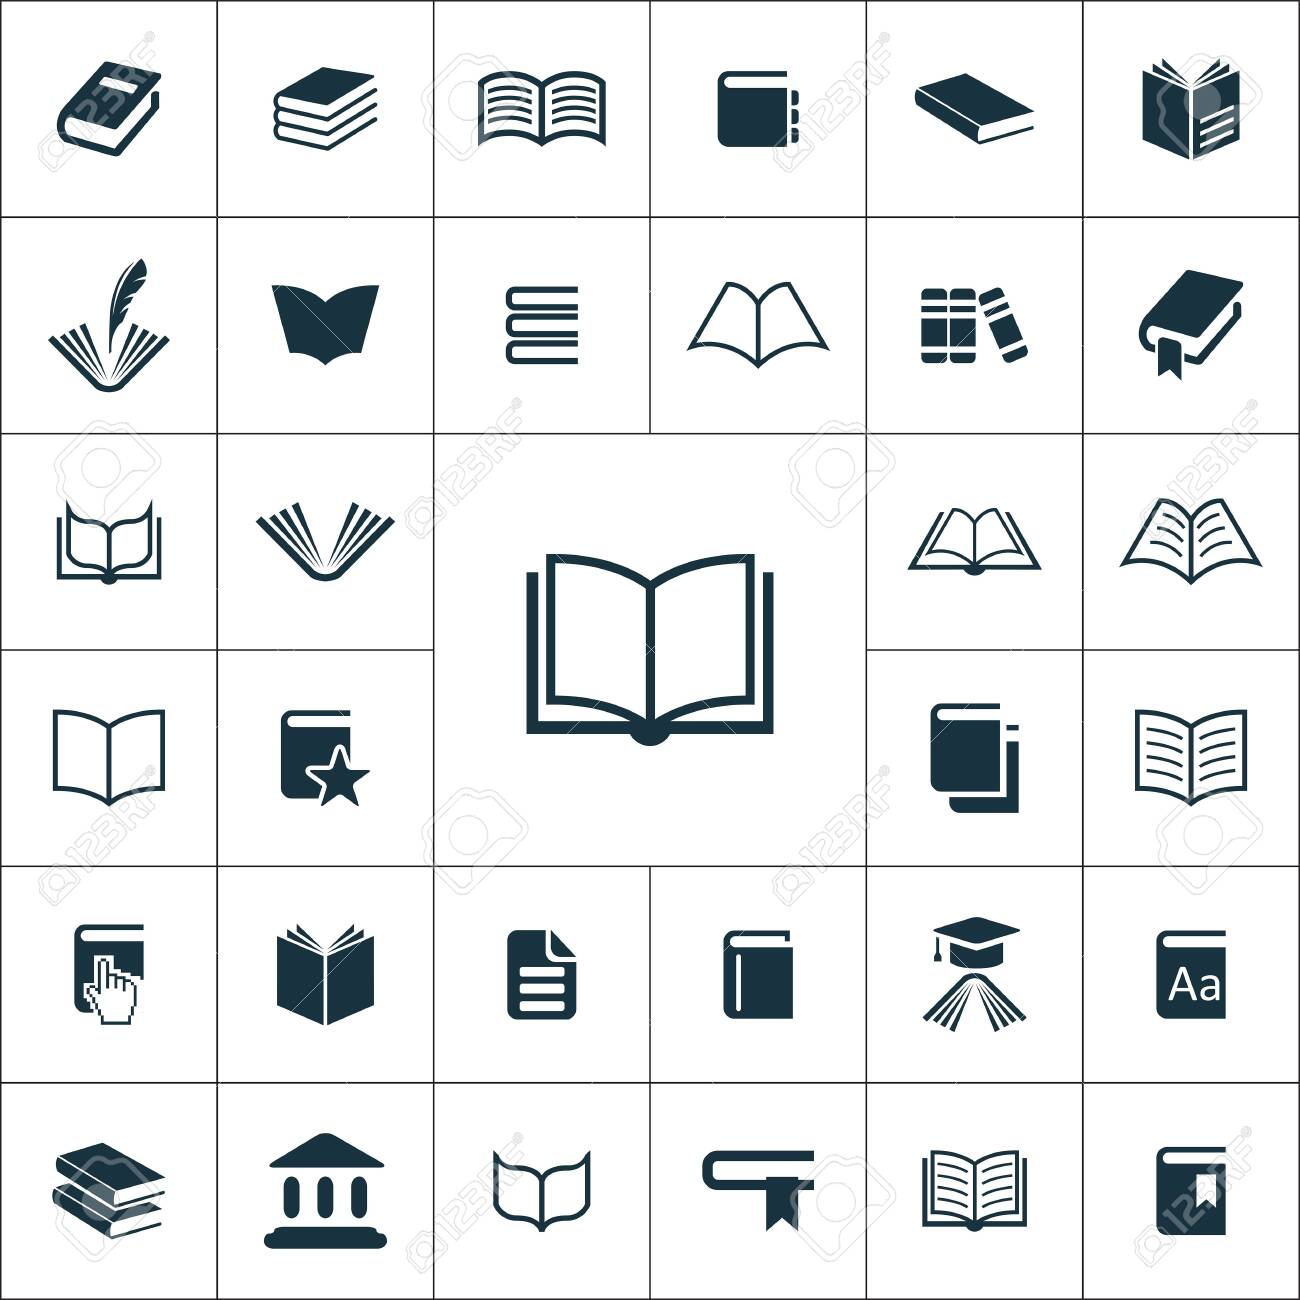 books icons universal set for web and mobile. - 132587334